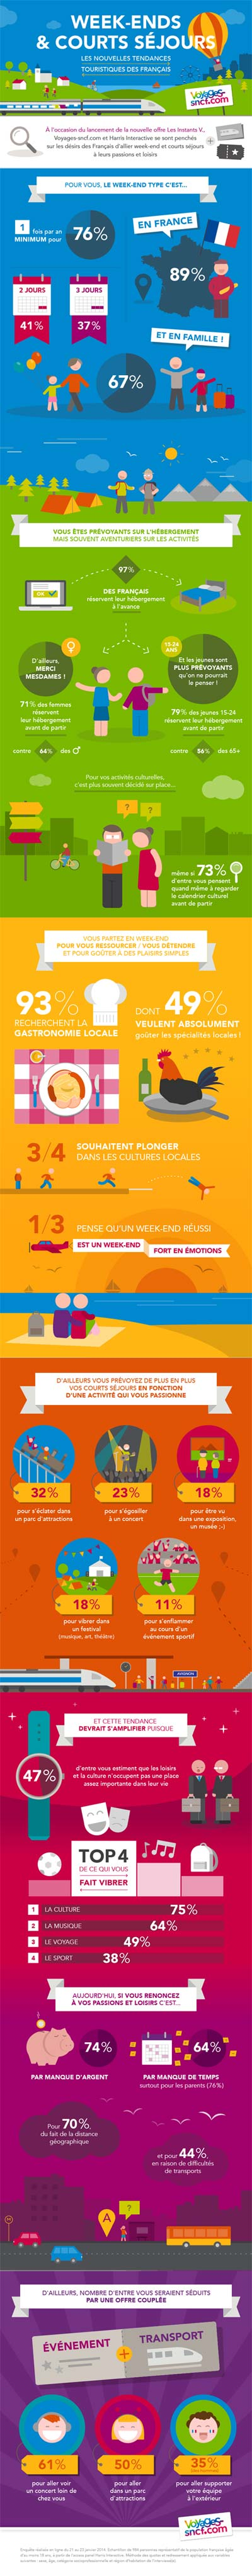 tourisme week end